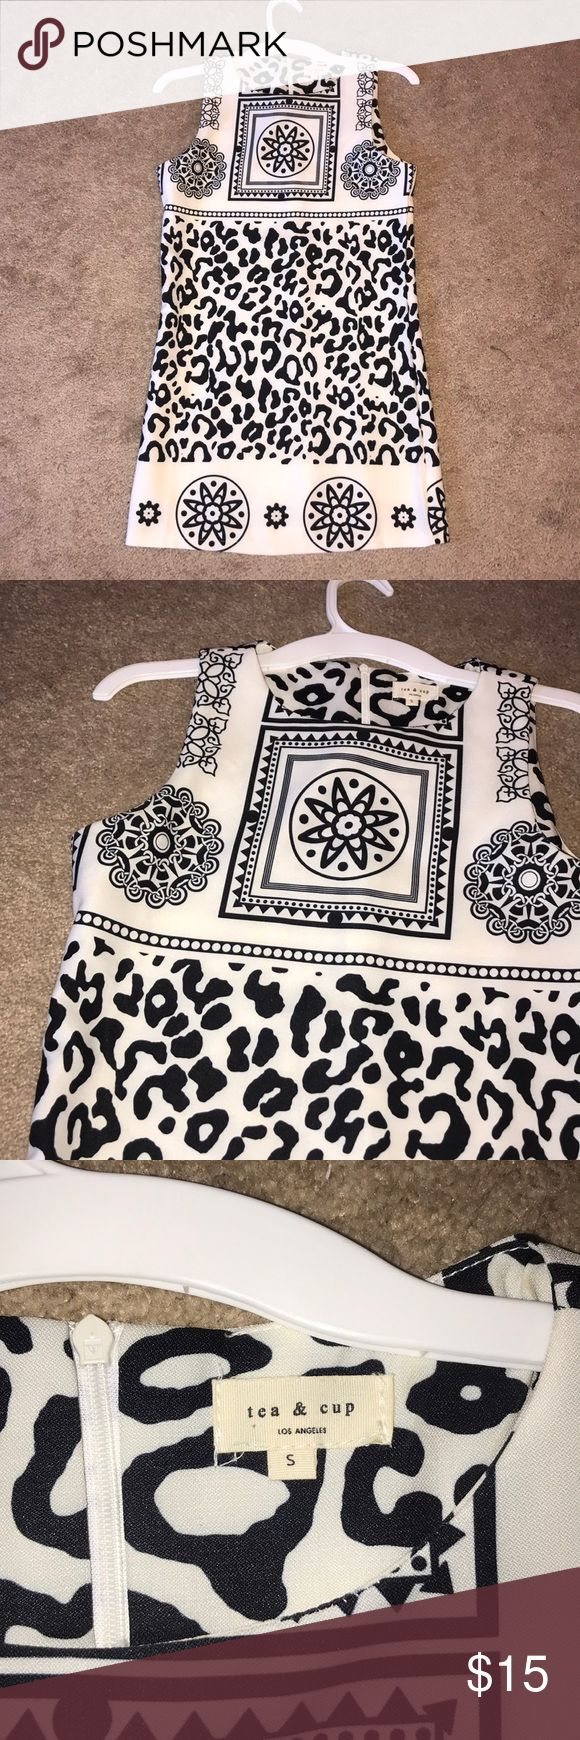 Tea and Cup Printed Dress CUTEST black and white shift dress!! Perfect for events YEAR ROUND. Love the cheetah print across the middle.   Size S and fits like so. Hits about mid-thigh. Zips up the back. This dress is NWOT! Tea n Cup Dresses Mini